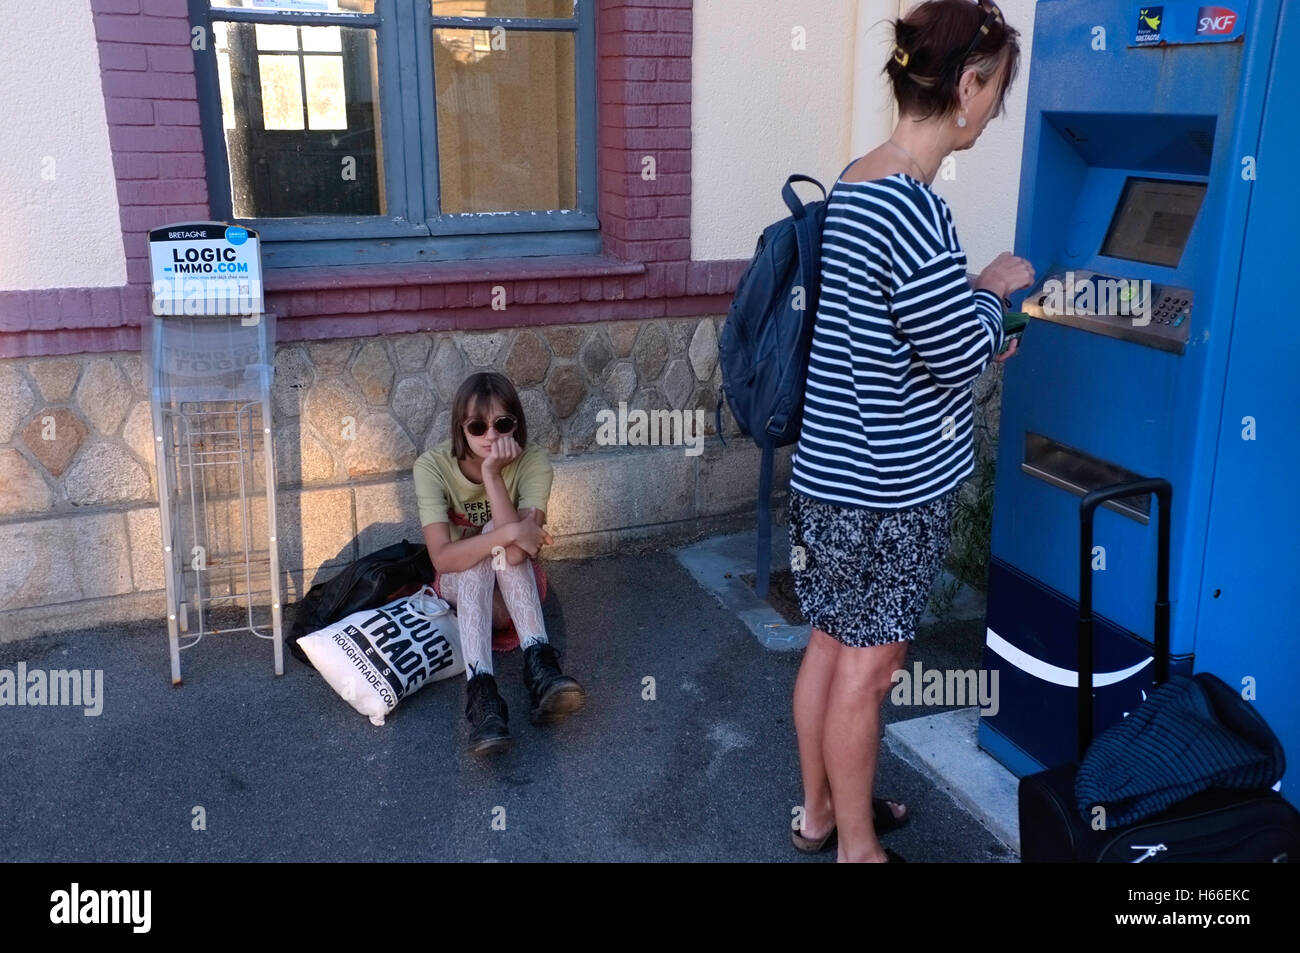 A mother buys a train ticket for whilst her daughter sits bored. - Stock Image